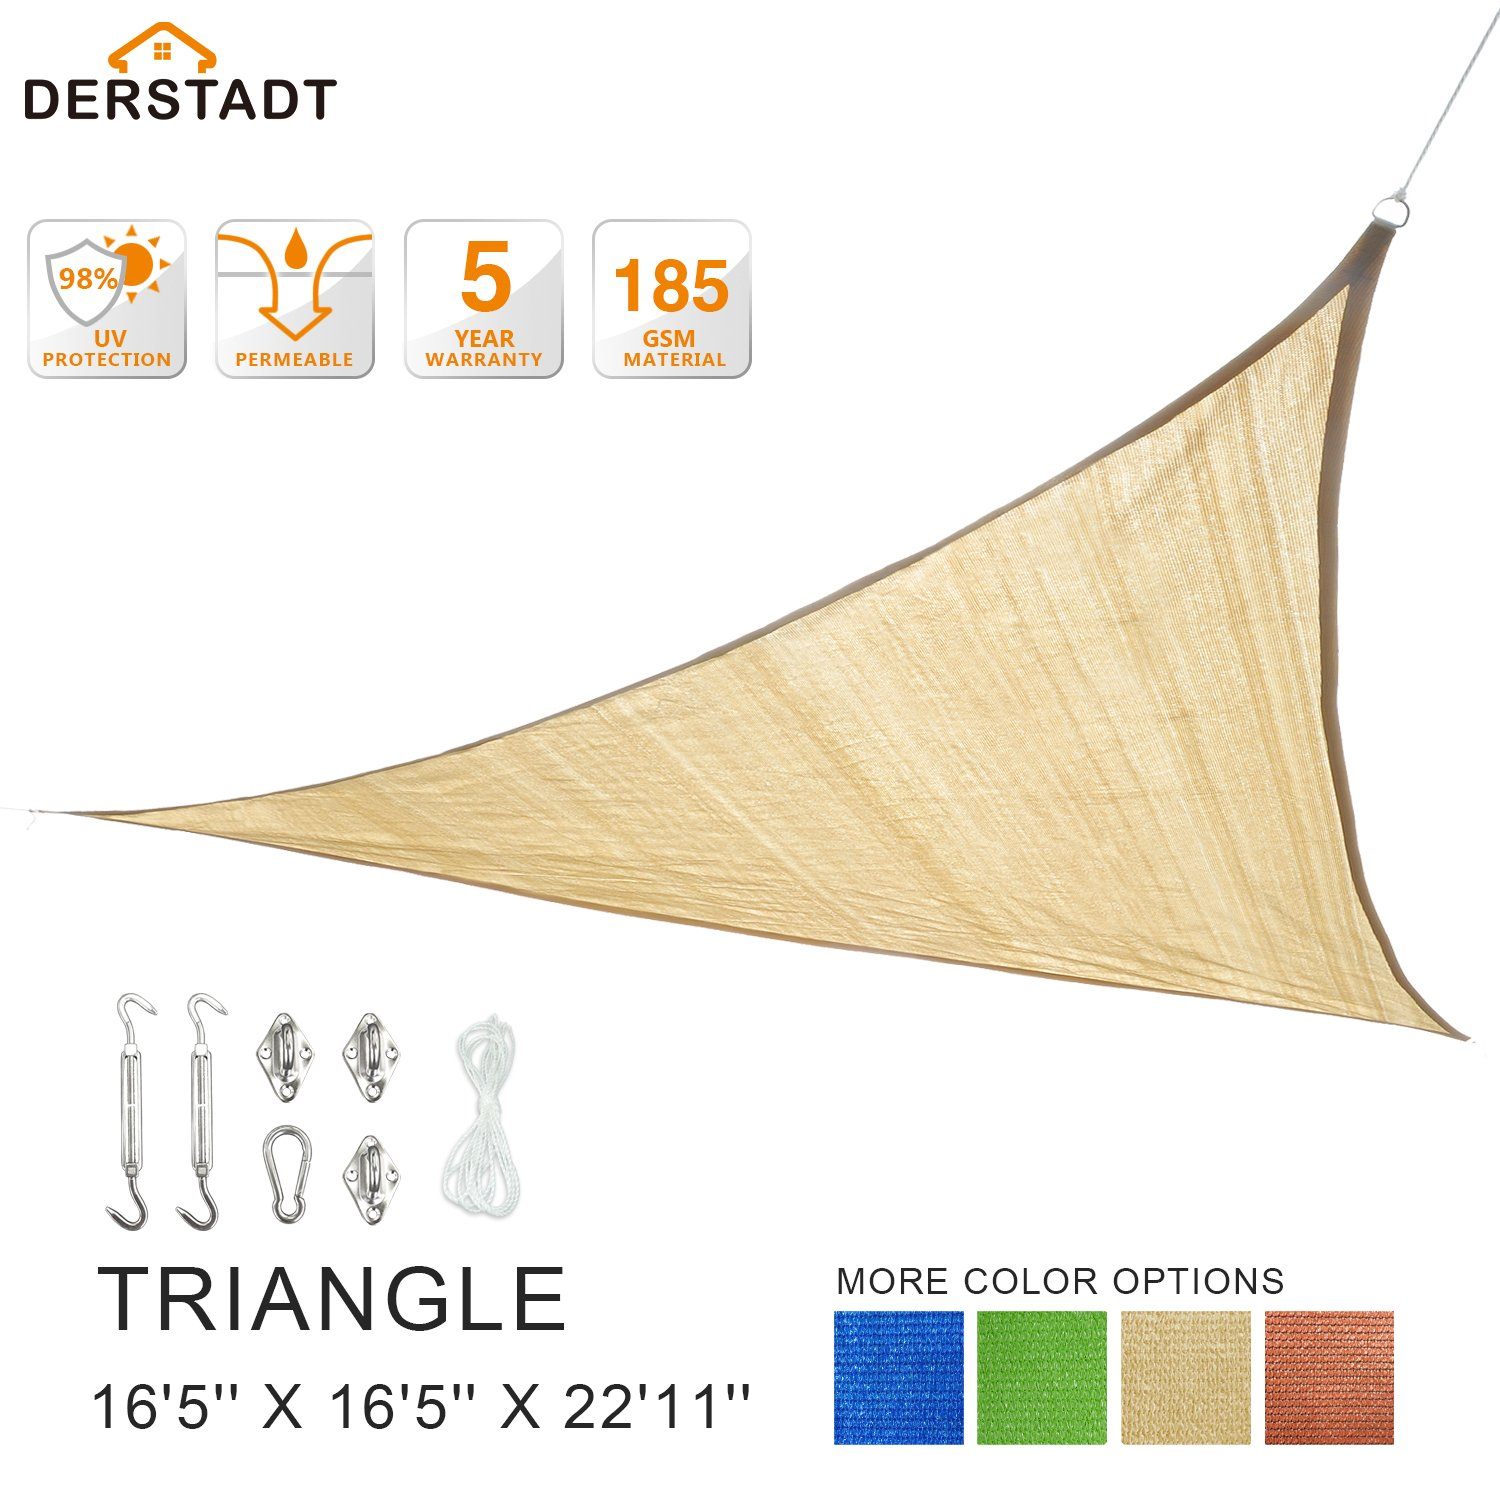 Derstadt Triangle 16'5'' X 16'5'' X 22'11'' 98% UV Block Sun Shade Sail with Stainless Steel Hardware Kit, Top Outdoor Patio Canopy Backyard Shelter (5 Years Warranty, 185G HDPE, 24.6'PE Rope) (Sand)